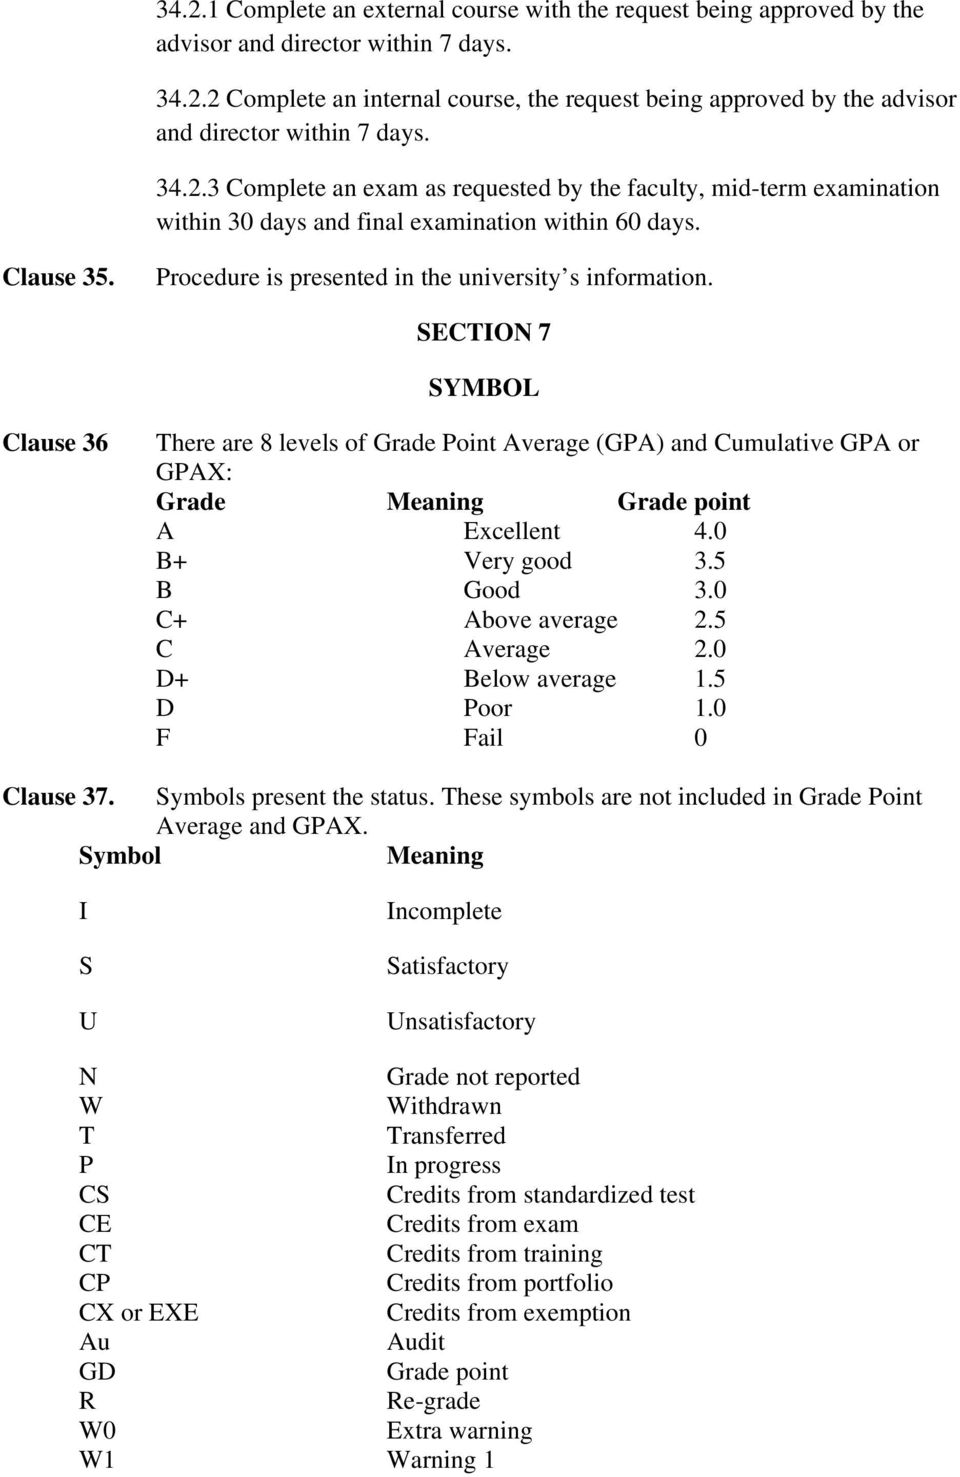 SECTION 7 SYMBOL Clause 36 There are 8 levels of Grade Point Average (GPA) and Cumulative GPA or GPAX: Grade Meaning Grade point A Excellent 4.0 B+ Very good 3.5 B Good 3.0 C+ Above average 2.